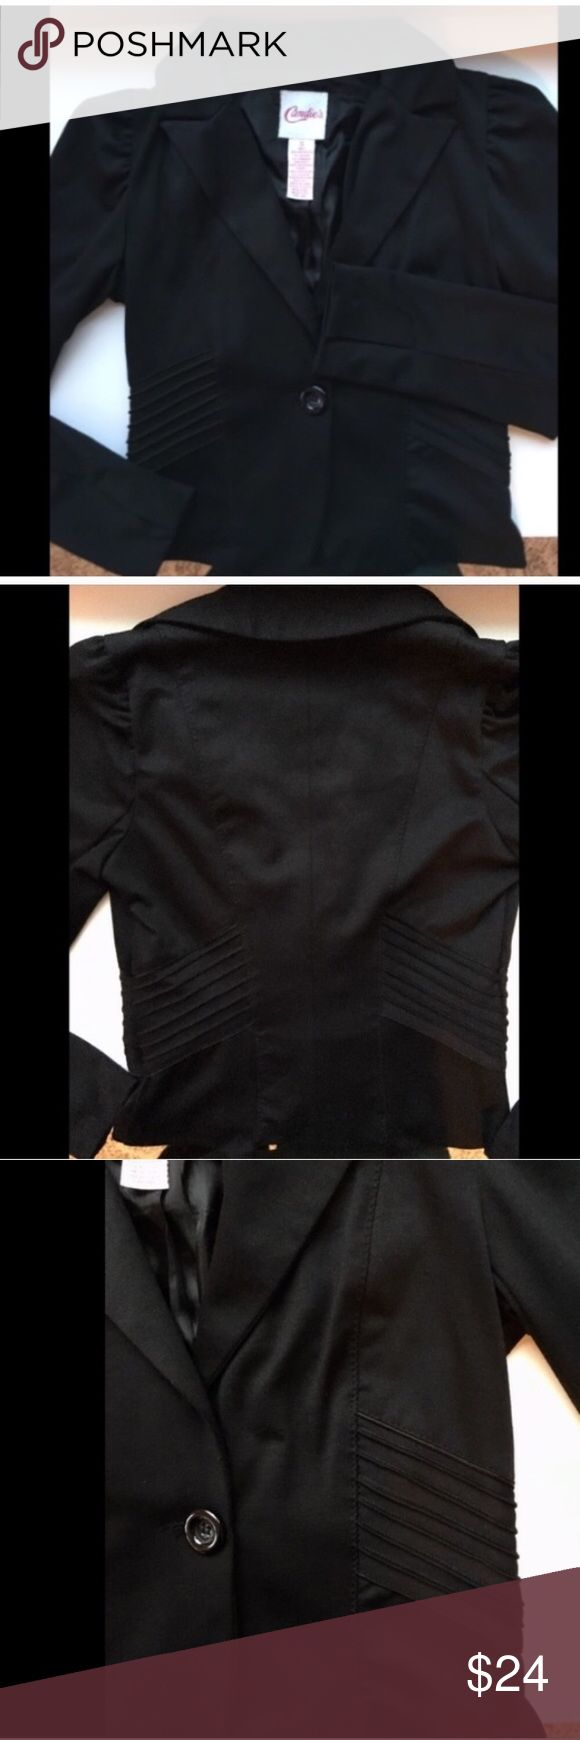 Candies black button up jacket This classy black jacket will complete any outfit! Whether it goes over your favorite dress or worn with jeans and heals. It has only been worn a couple times and looks brand-new. Jacket has a collar and slightly puffed sleeves with one large button to close off the front. Material is 78% polyester, 17% rayon 5% spandex. Contrast 100% polyester lining. Candies Jackets & Coats